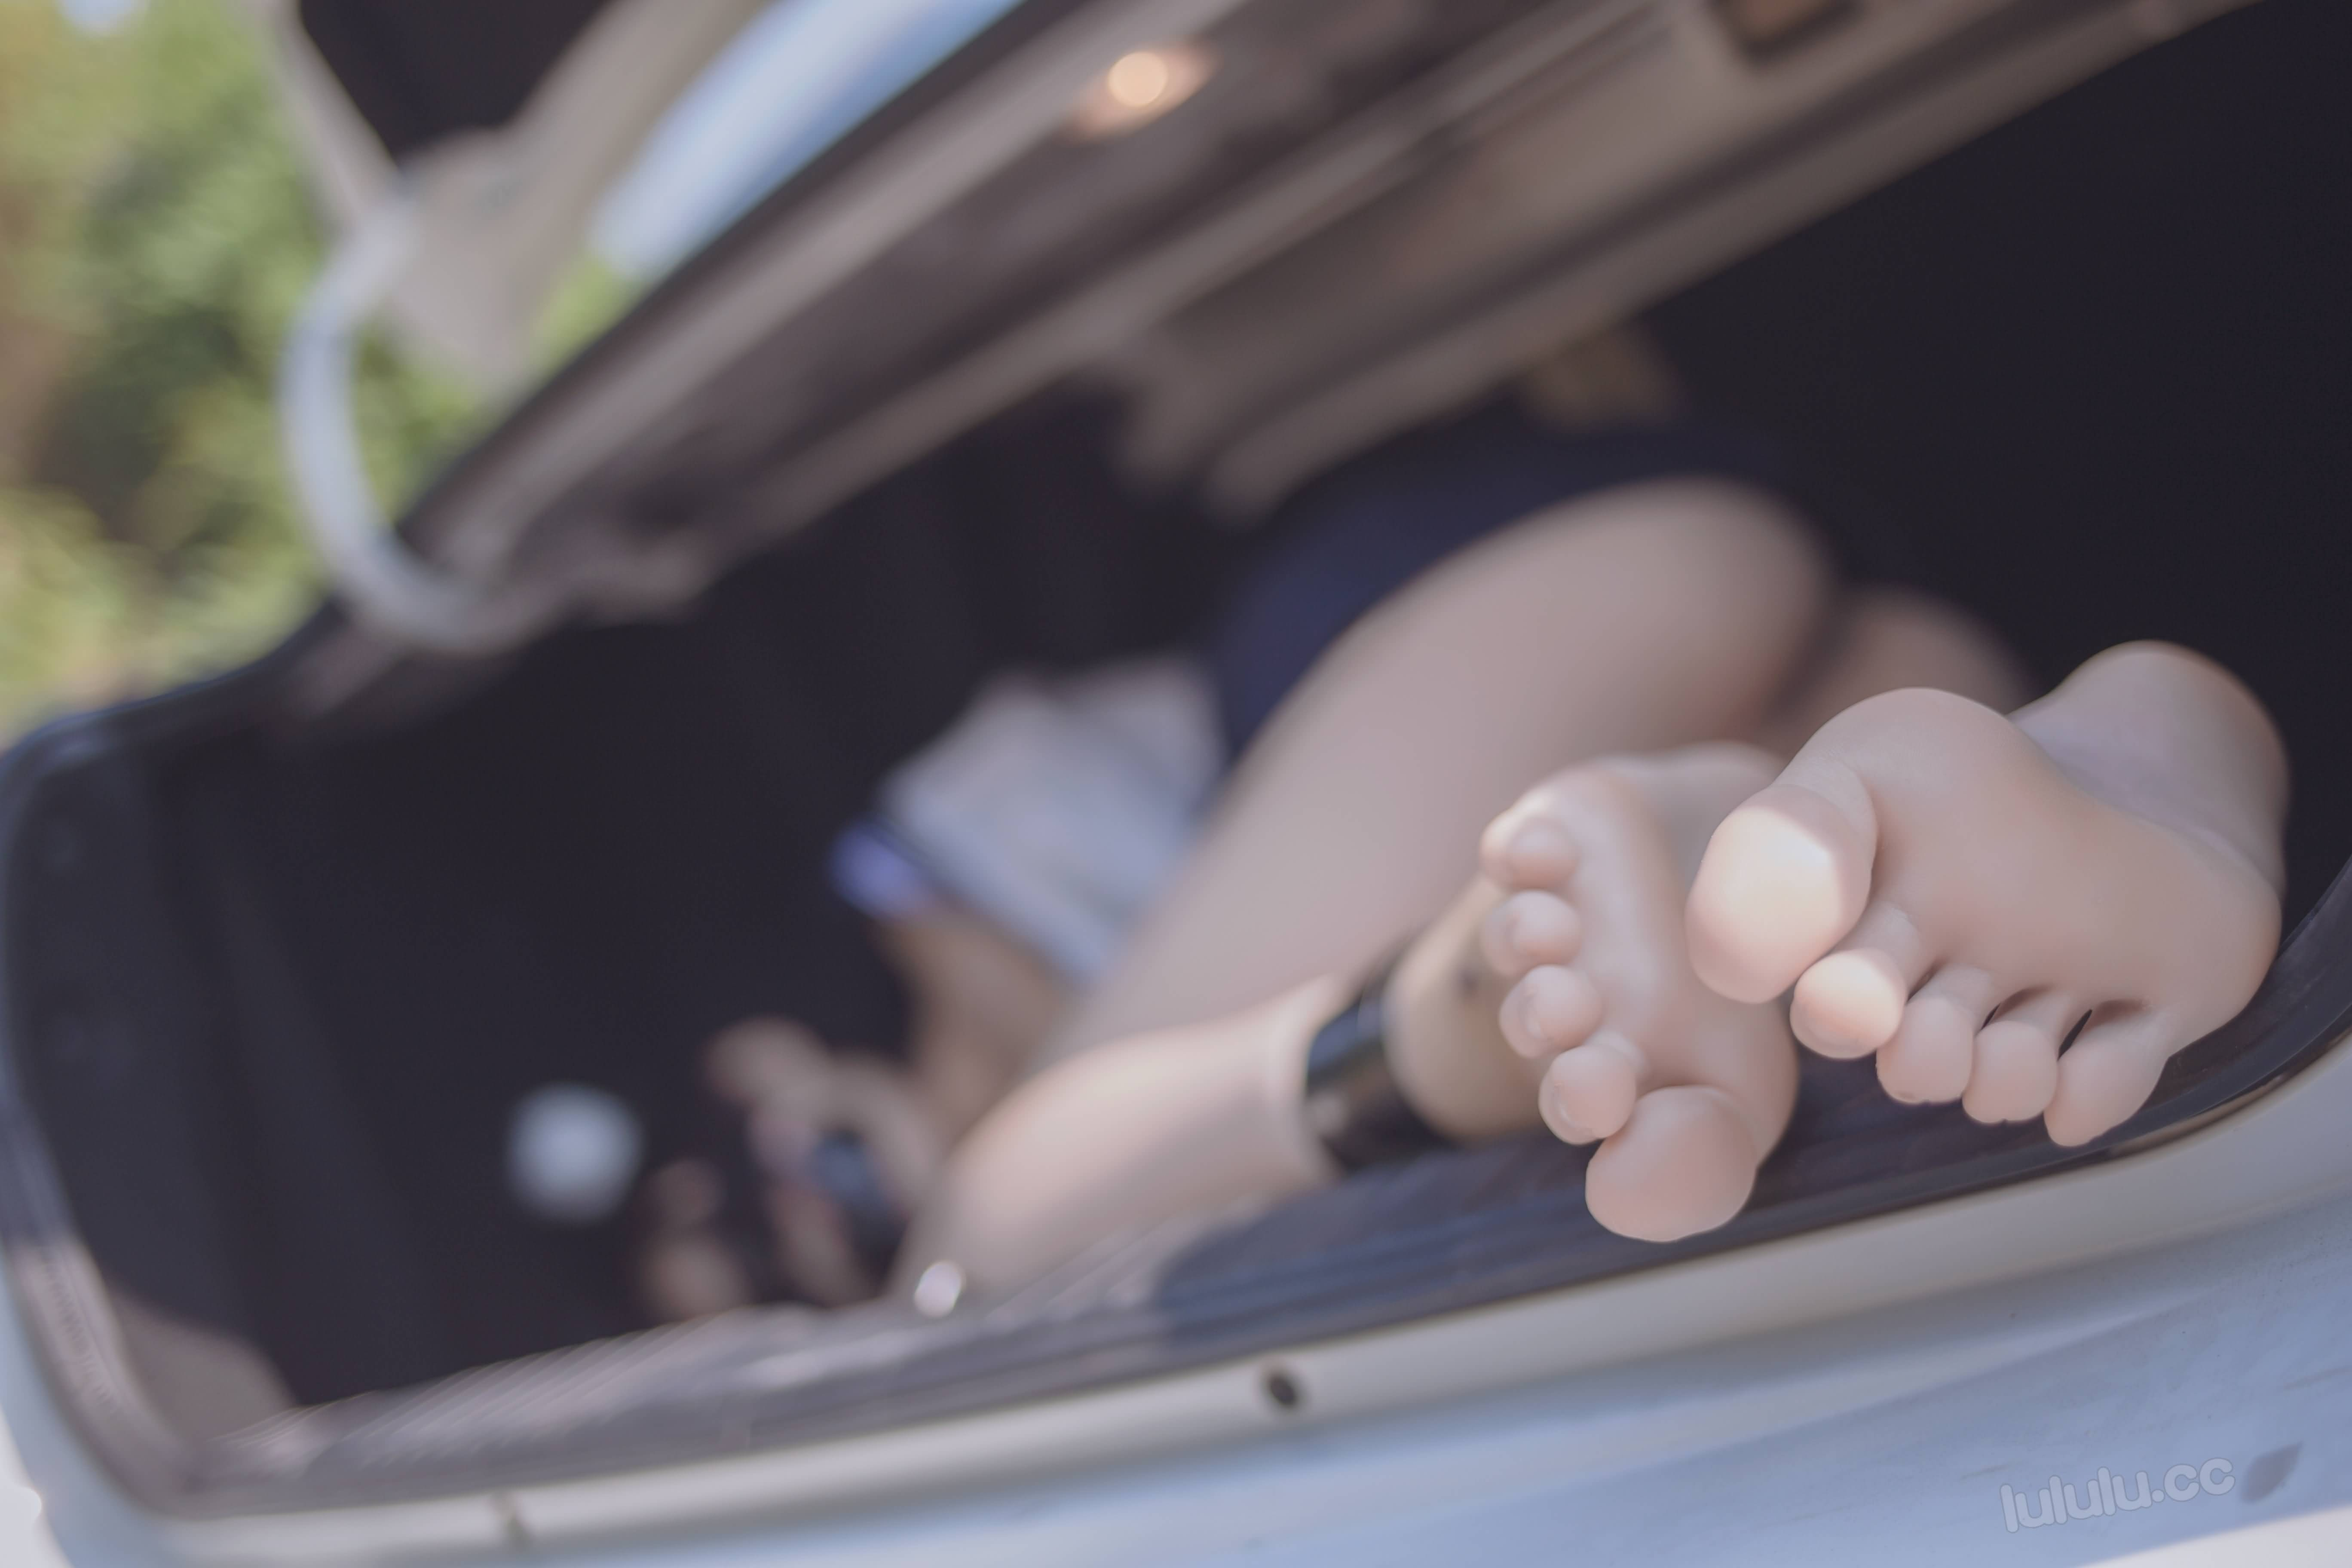 irnlTG - Japanese schoolgirls were kidnapped and stuffed into the trunk of car 悠宝三岁 JK服